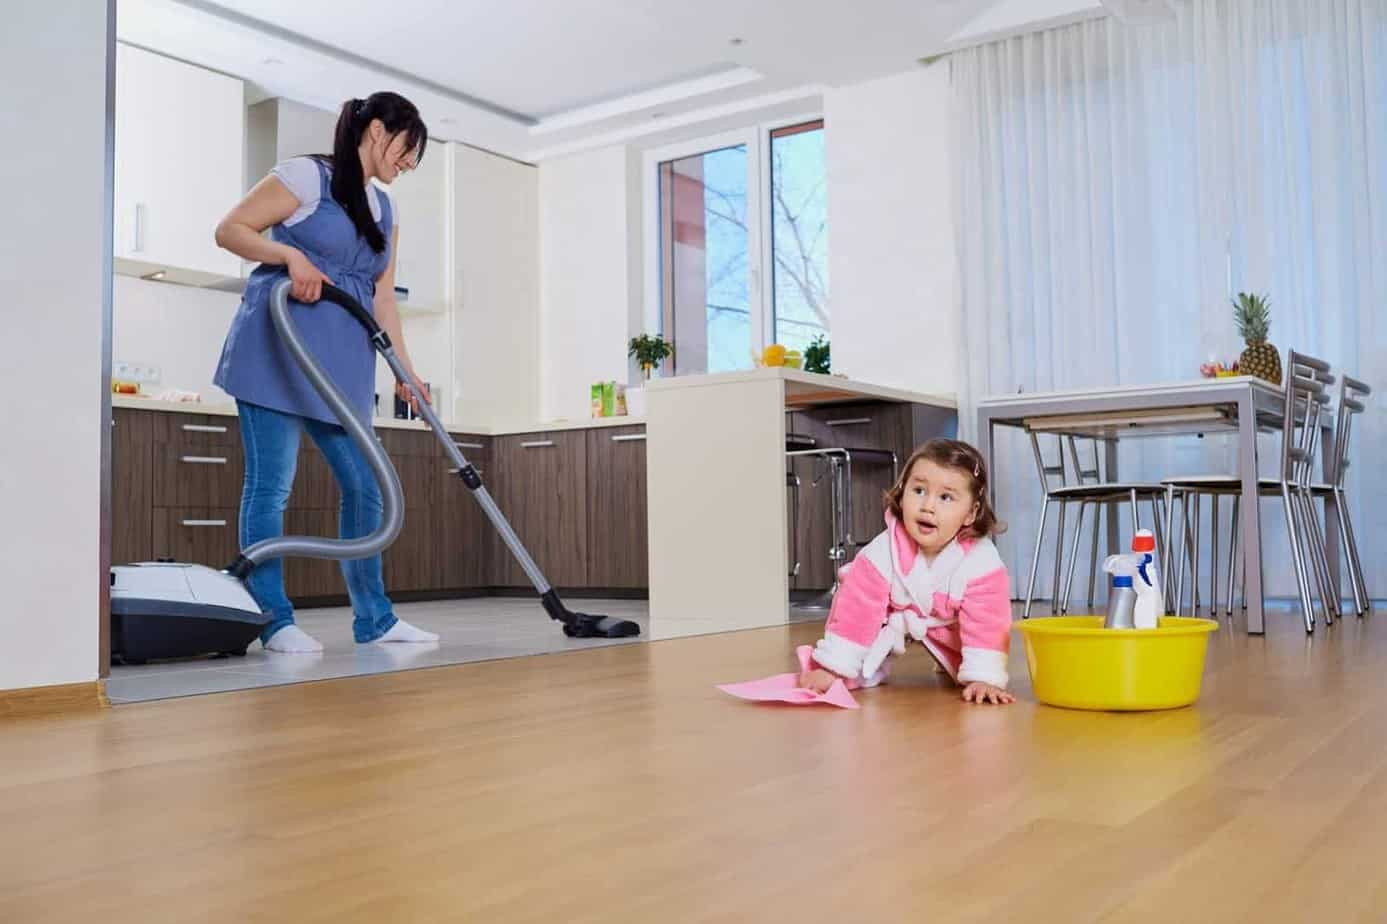 Mother and child cleaning room  Cleaning Services